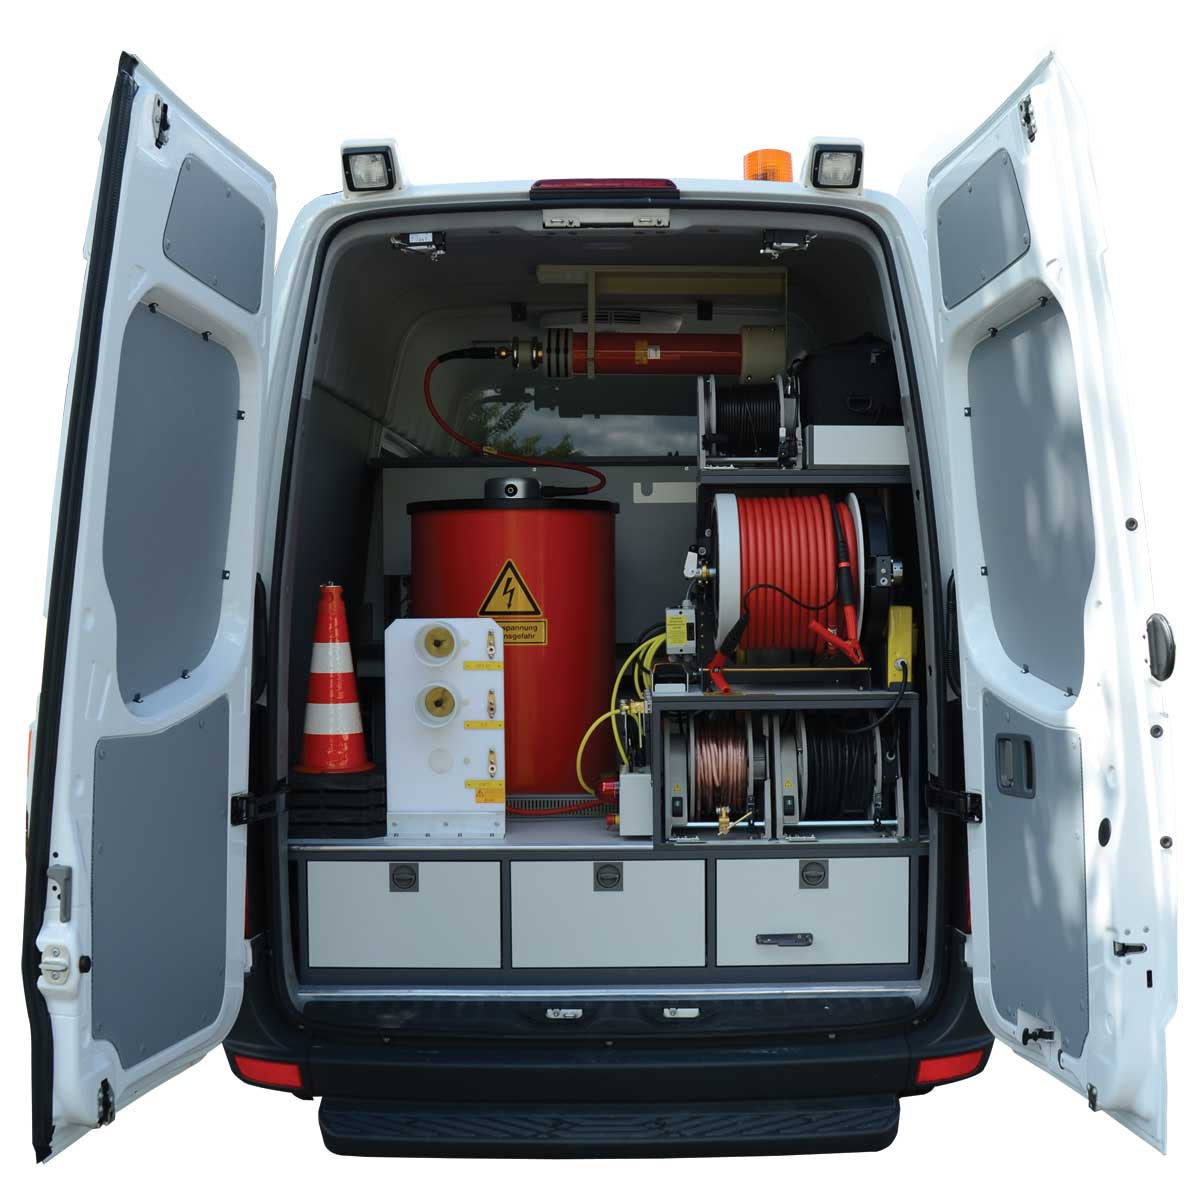 megger cable test van power cable fault test vans in india. Black Bedroom Furniture Sets. Home Design Ideas